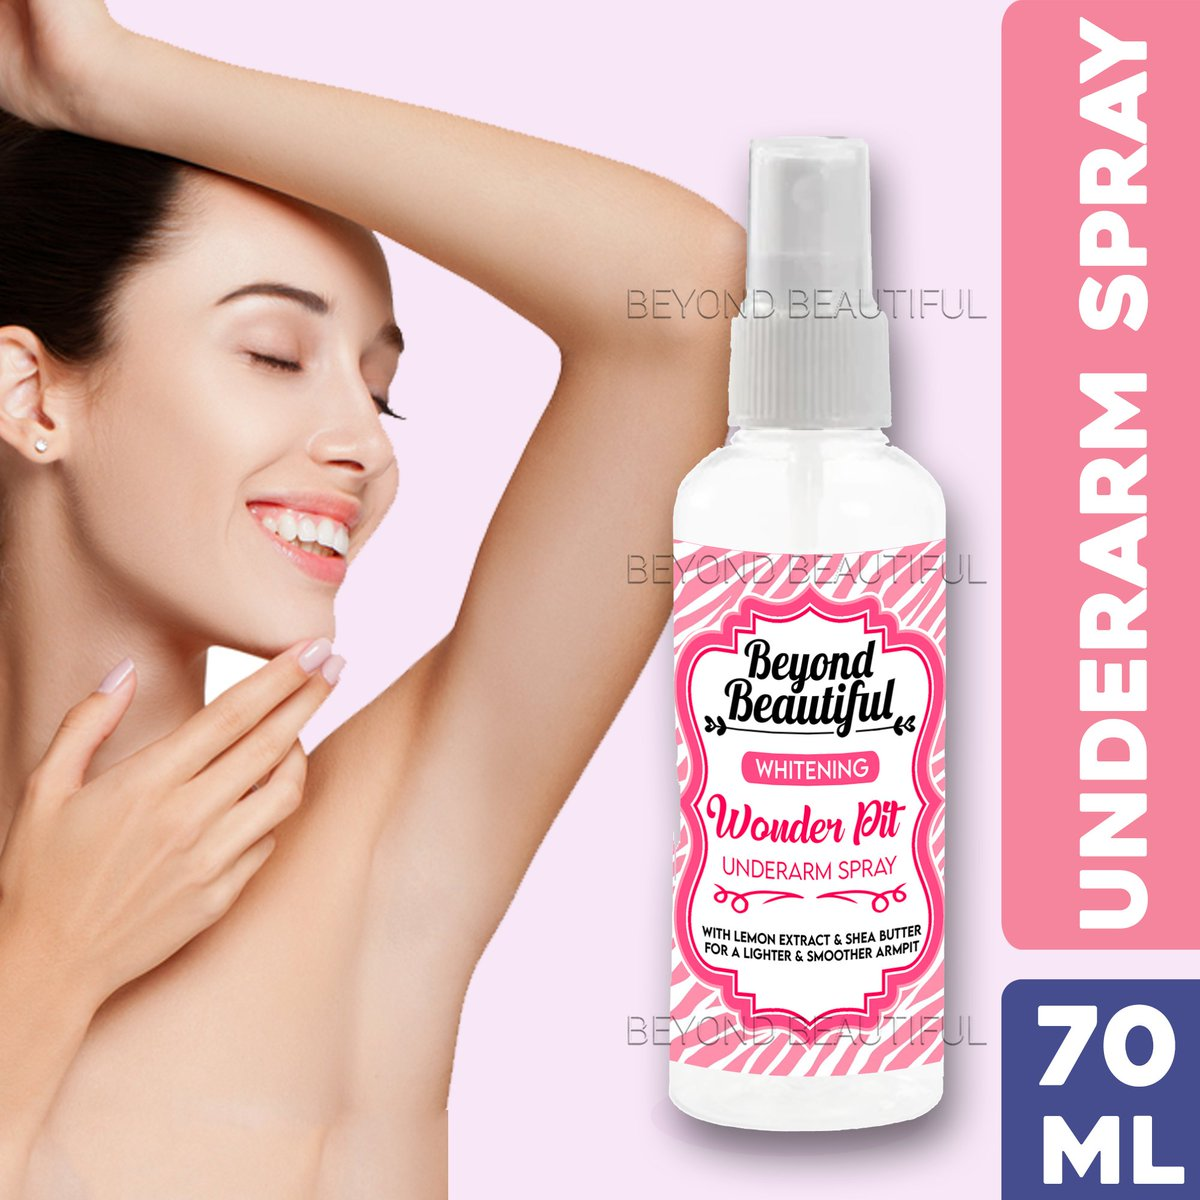 ‼️Beyond Beautiful Underarm Whitening Spray Deodorant‼️ 🛒SHOP NOW!➡  🛒SHOP NOW!➡  ₱59  🚚Cash on Delivery 🚚Nationwide Delivery  **Price is subject to change without prior notice  #LazadaPH #NasaLazadaYan #pinaykilikili